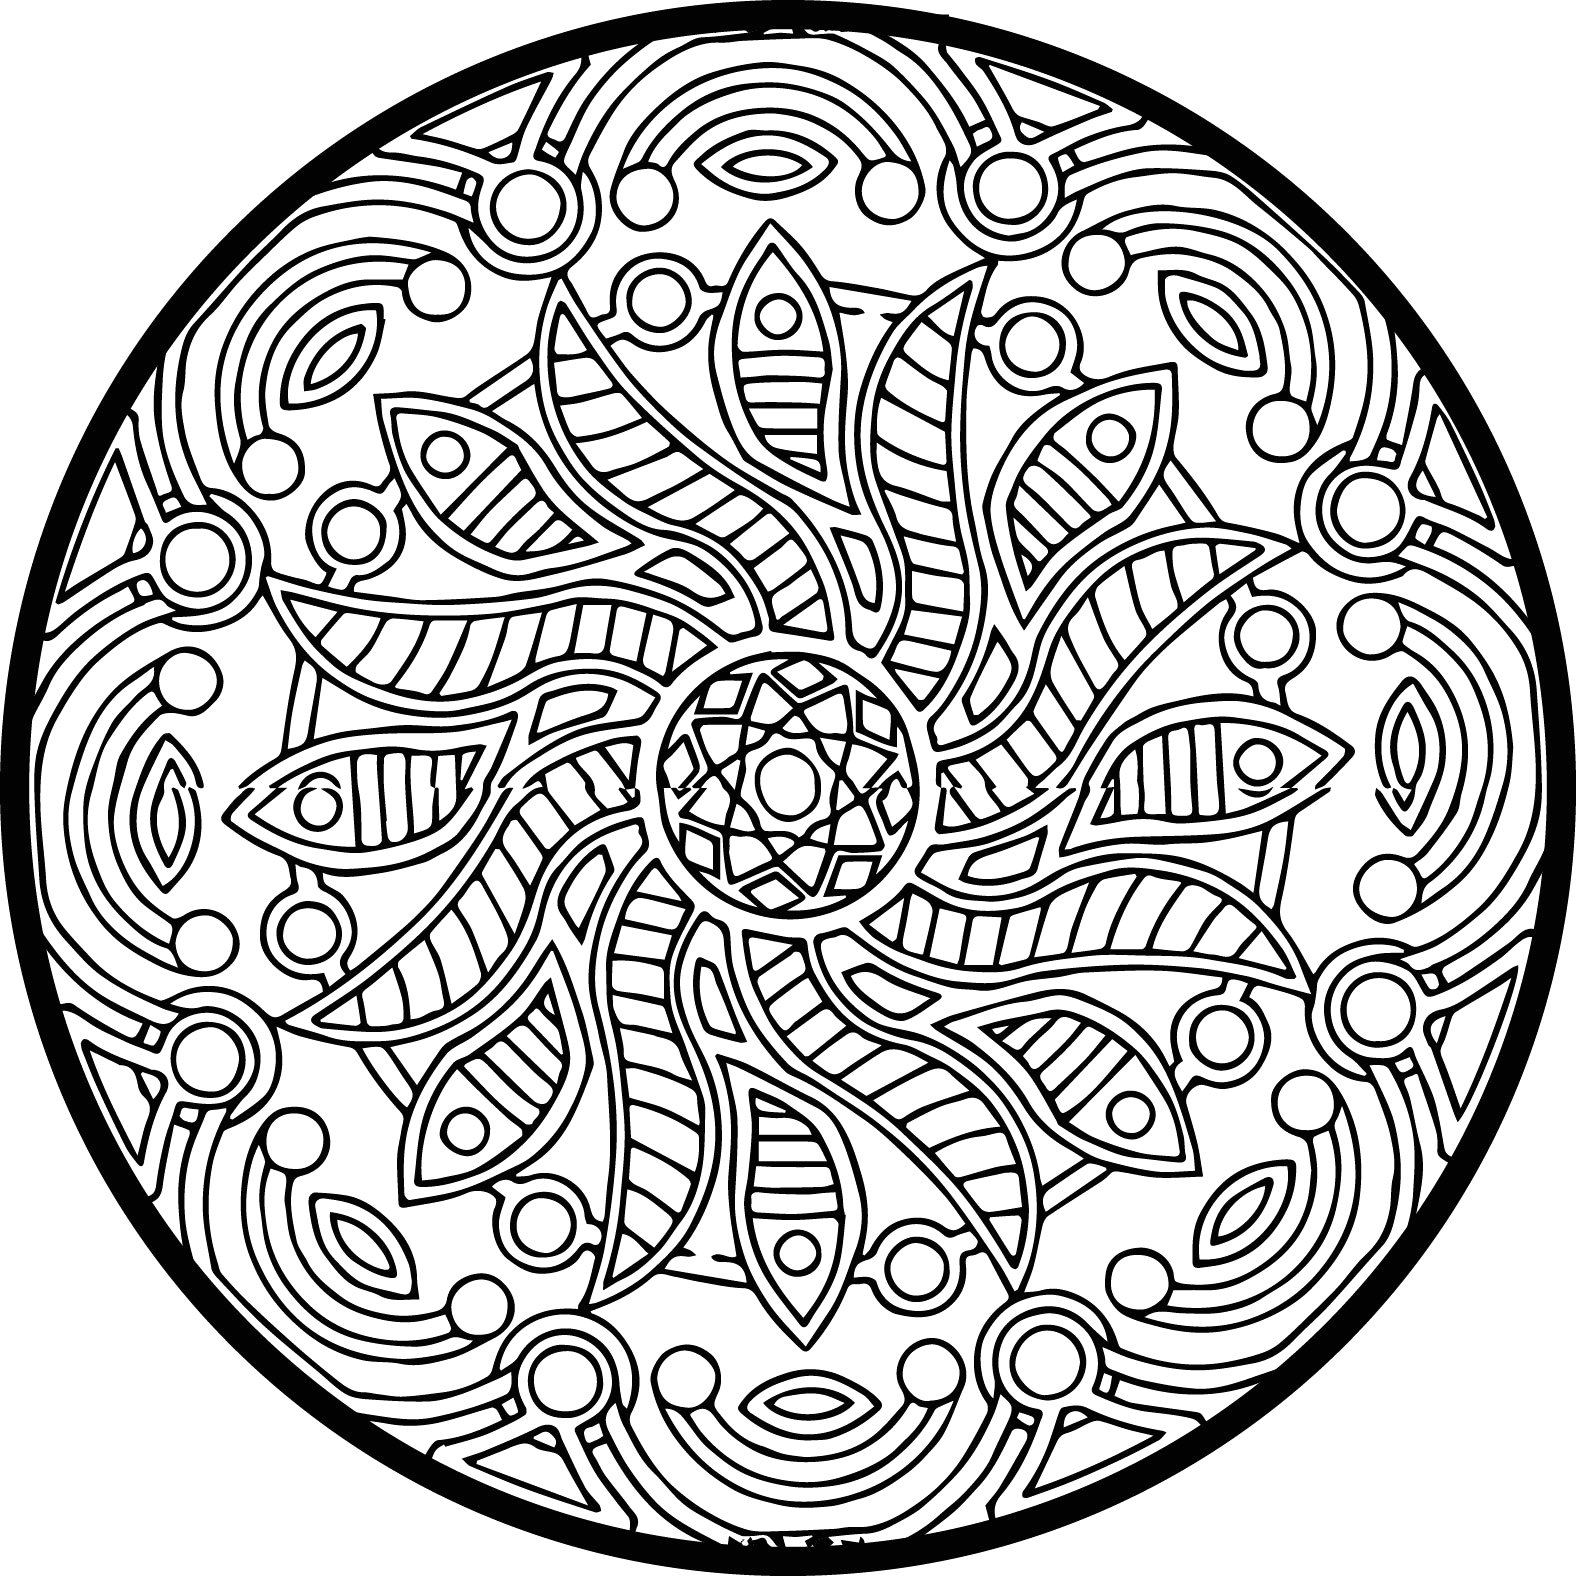 Free Full Size Coloring Pages to Print Full Size Coloring Pages for Adults at Getcolorings